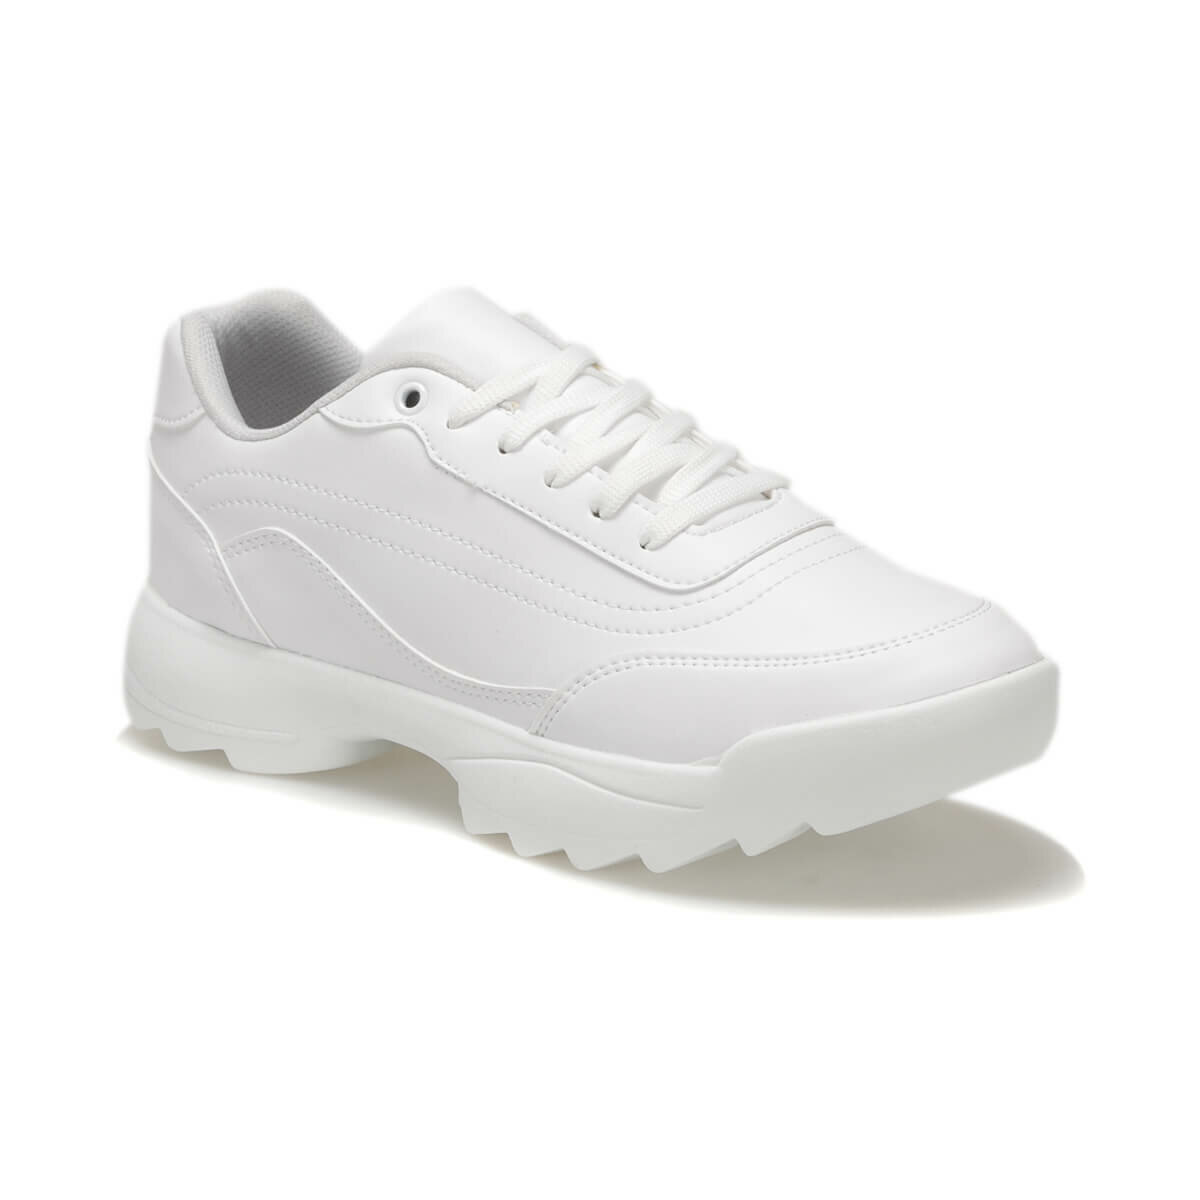 FLO ALFIO W White Women 'S Sneaker Shoes Torex